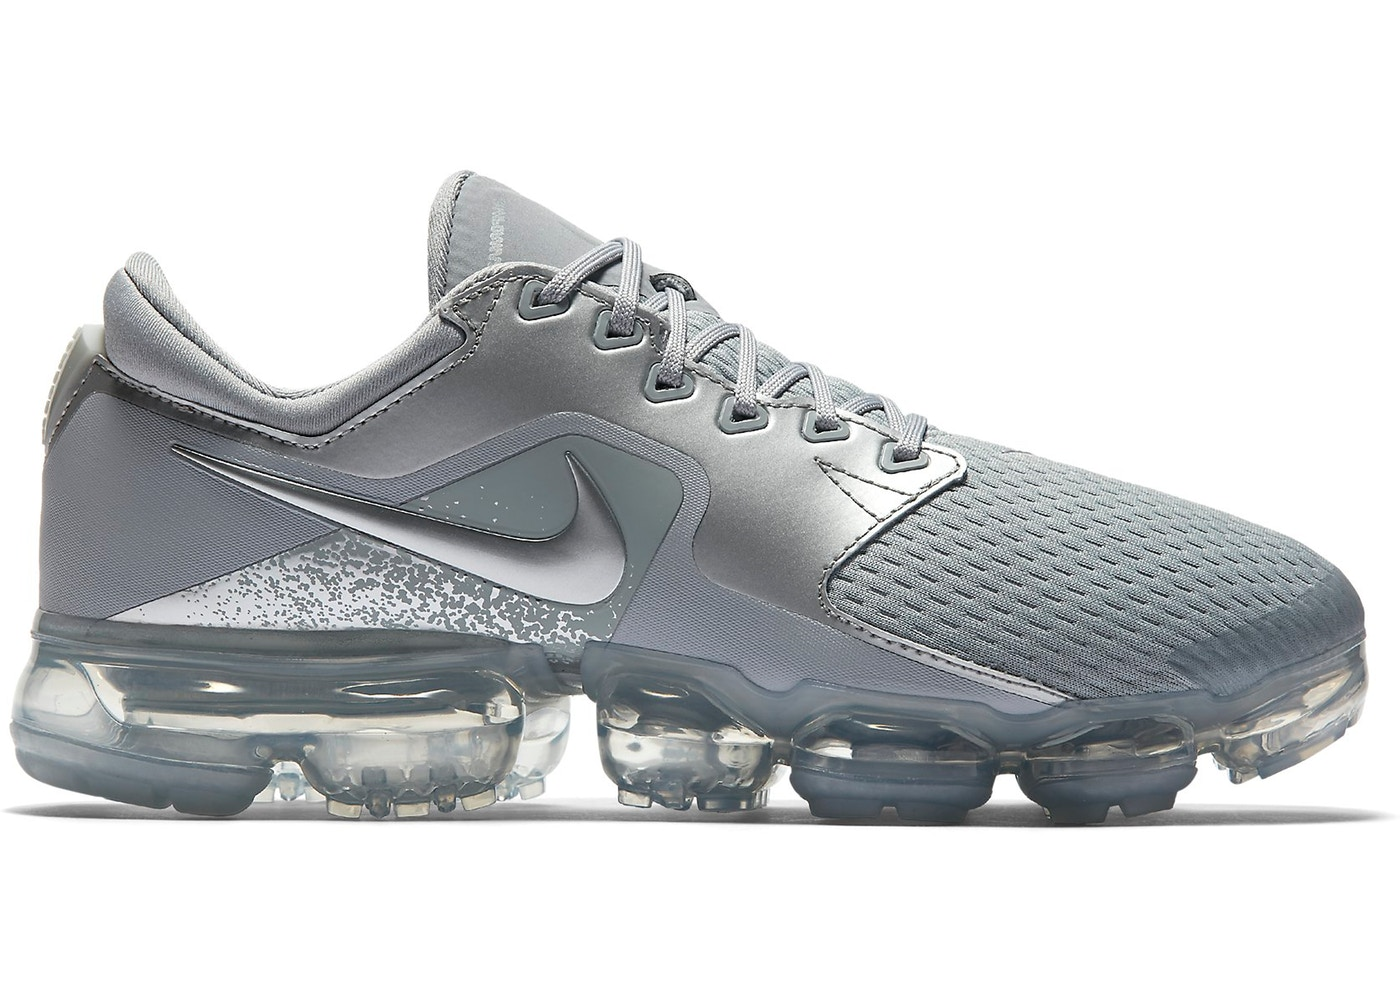 61220f26a1 Nike Air Max VaporMax Shoes - Lowest Ask